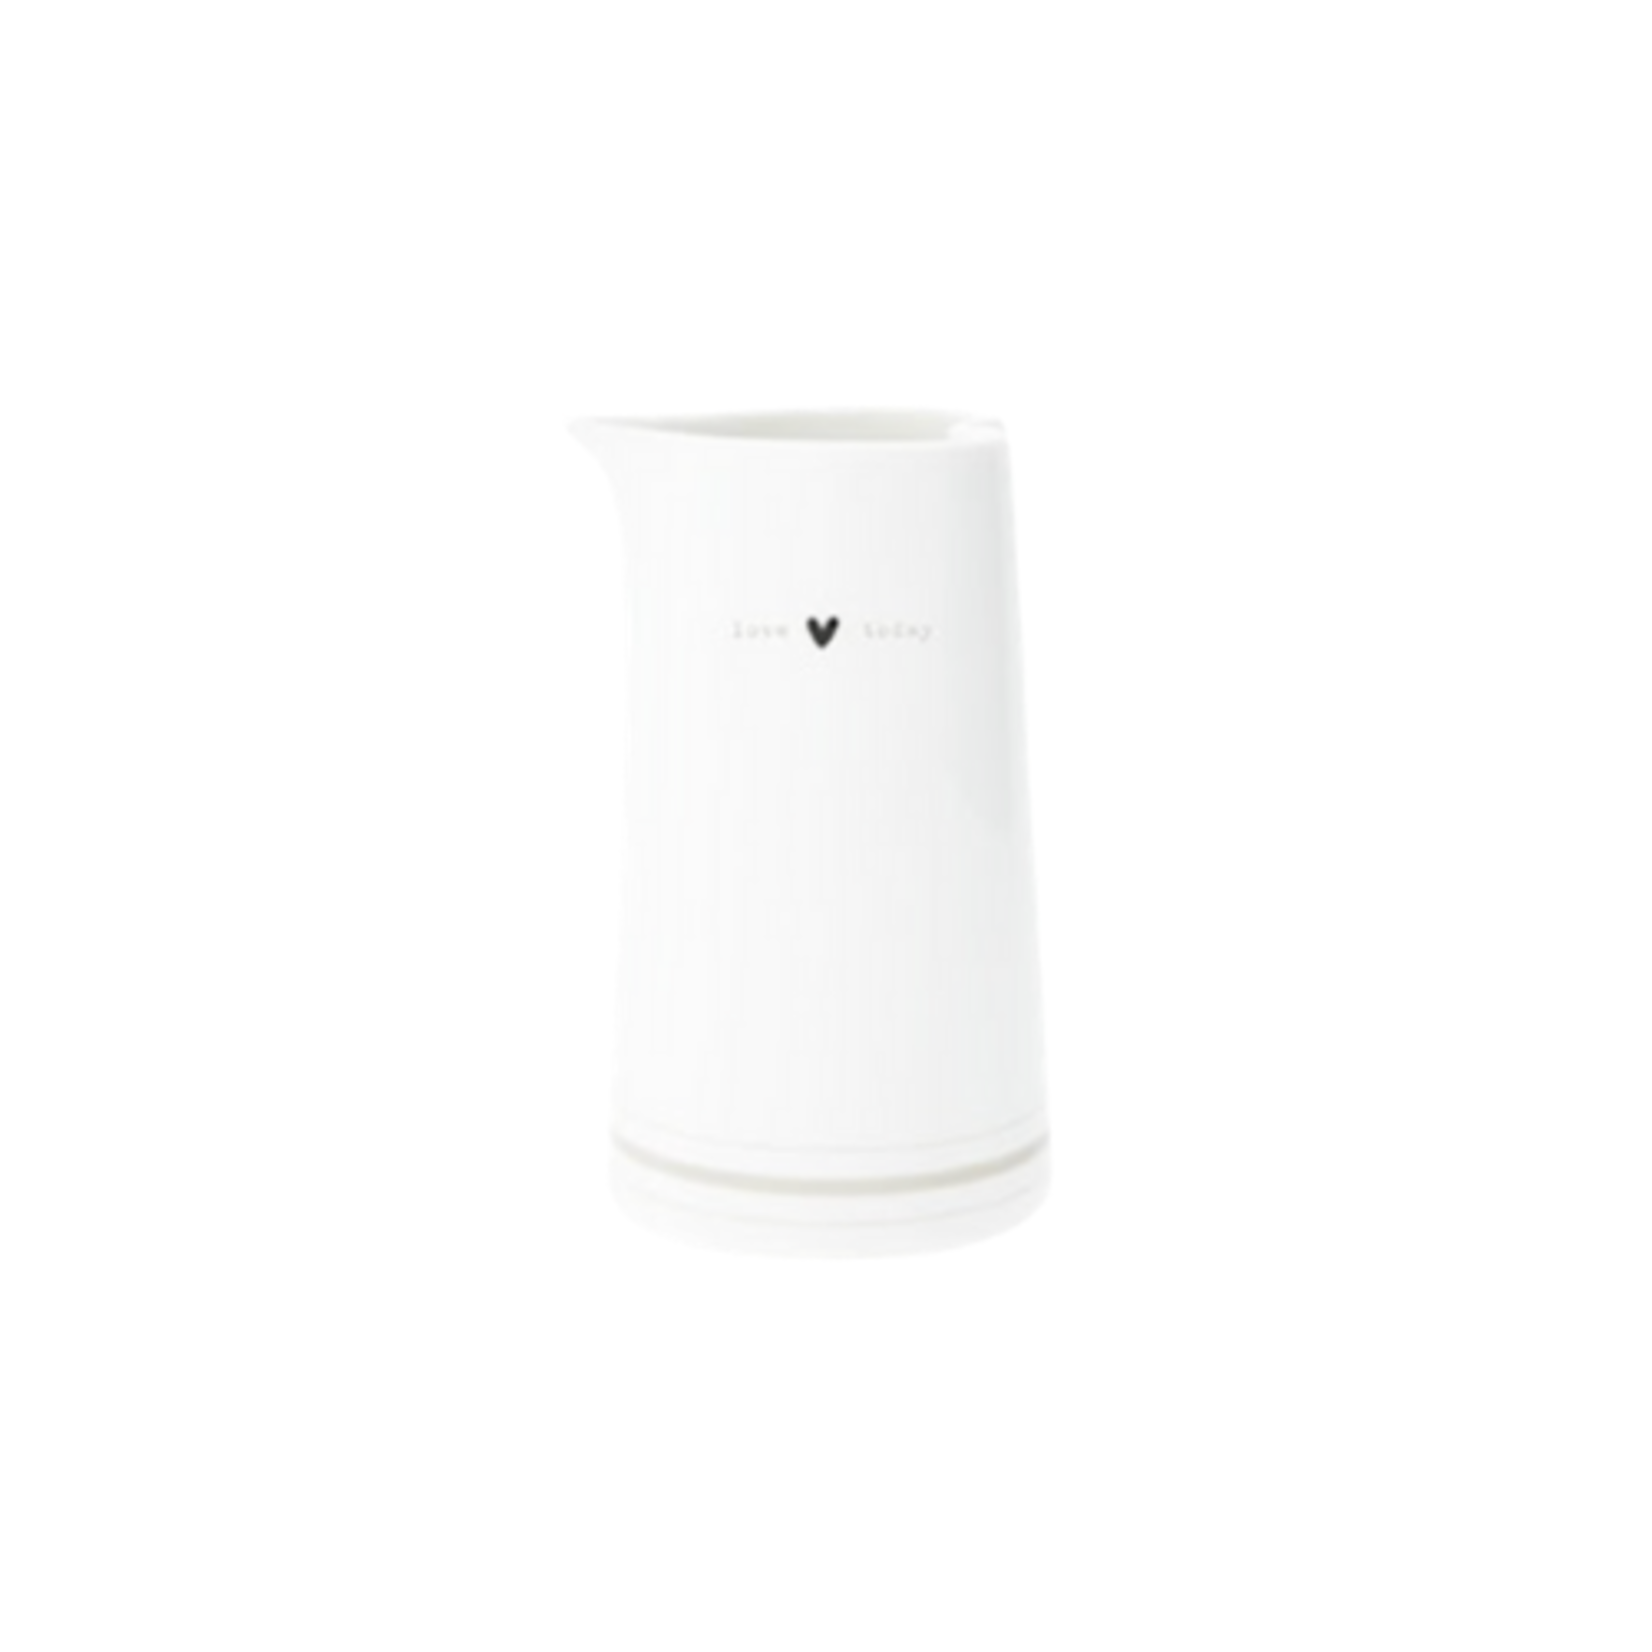 Bastion Collections Jug White Love Today medium